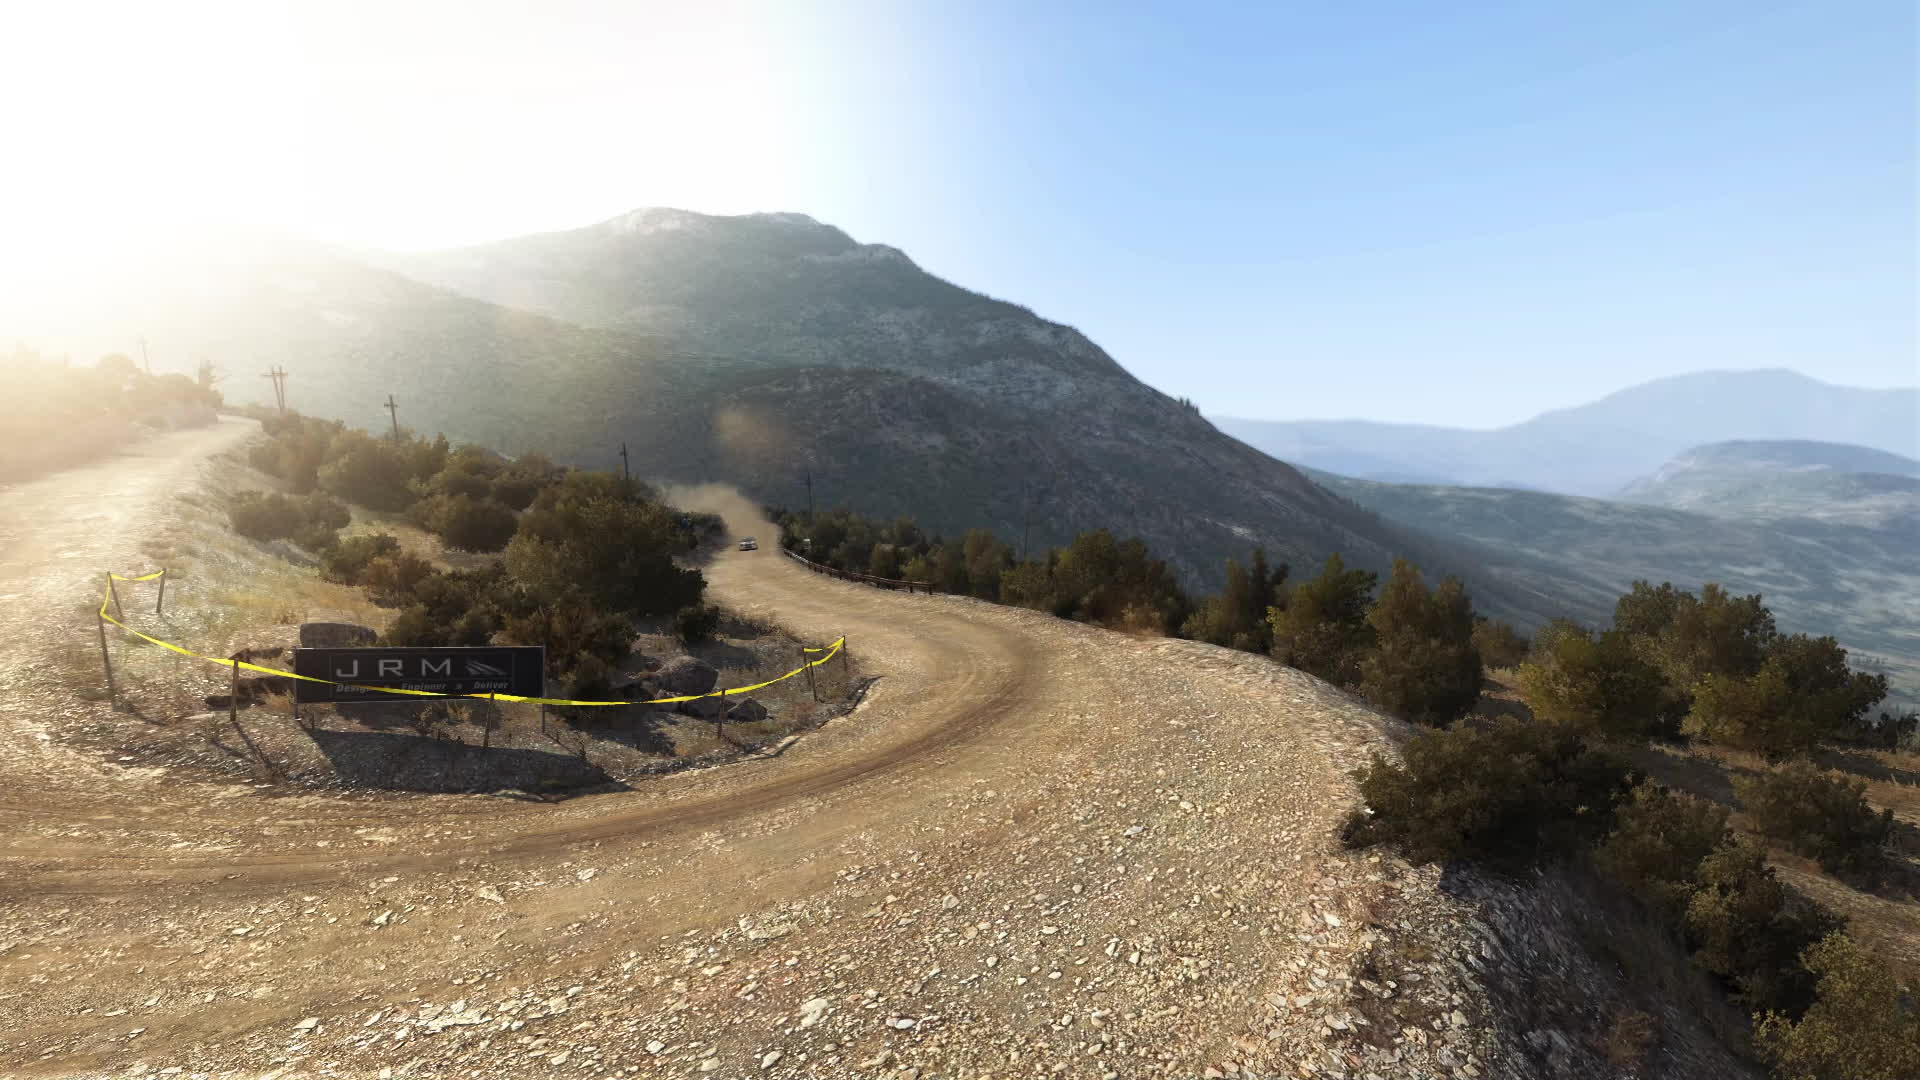 dirtgame, gaming, rally, From the Outside GIFs